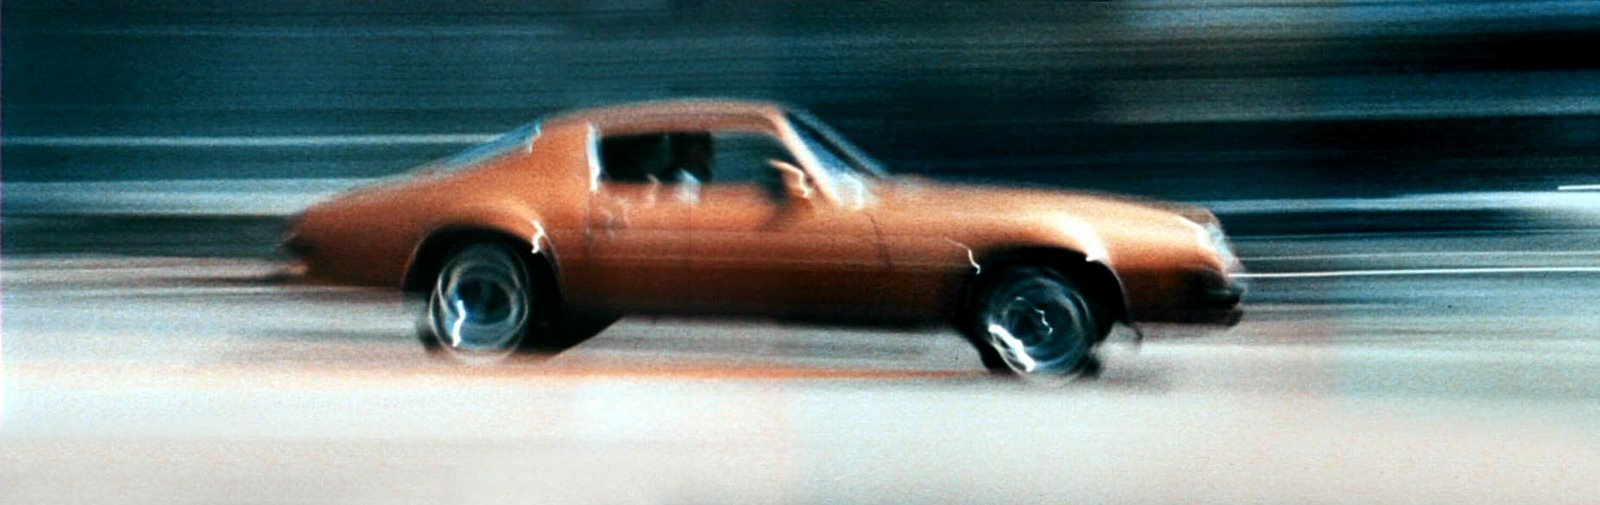 Death Proof Nova.